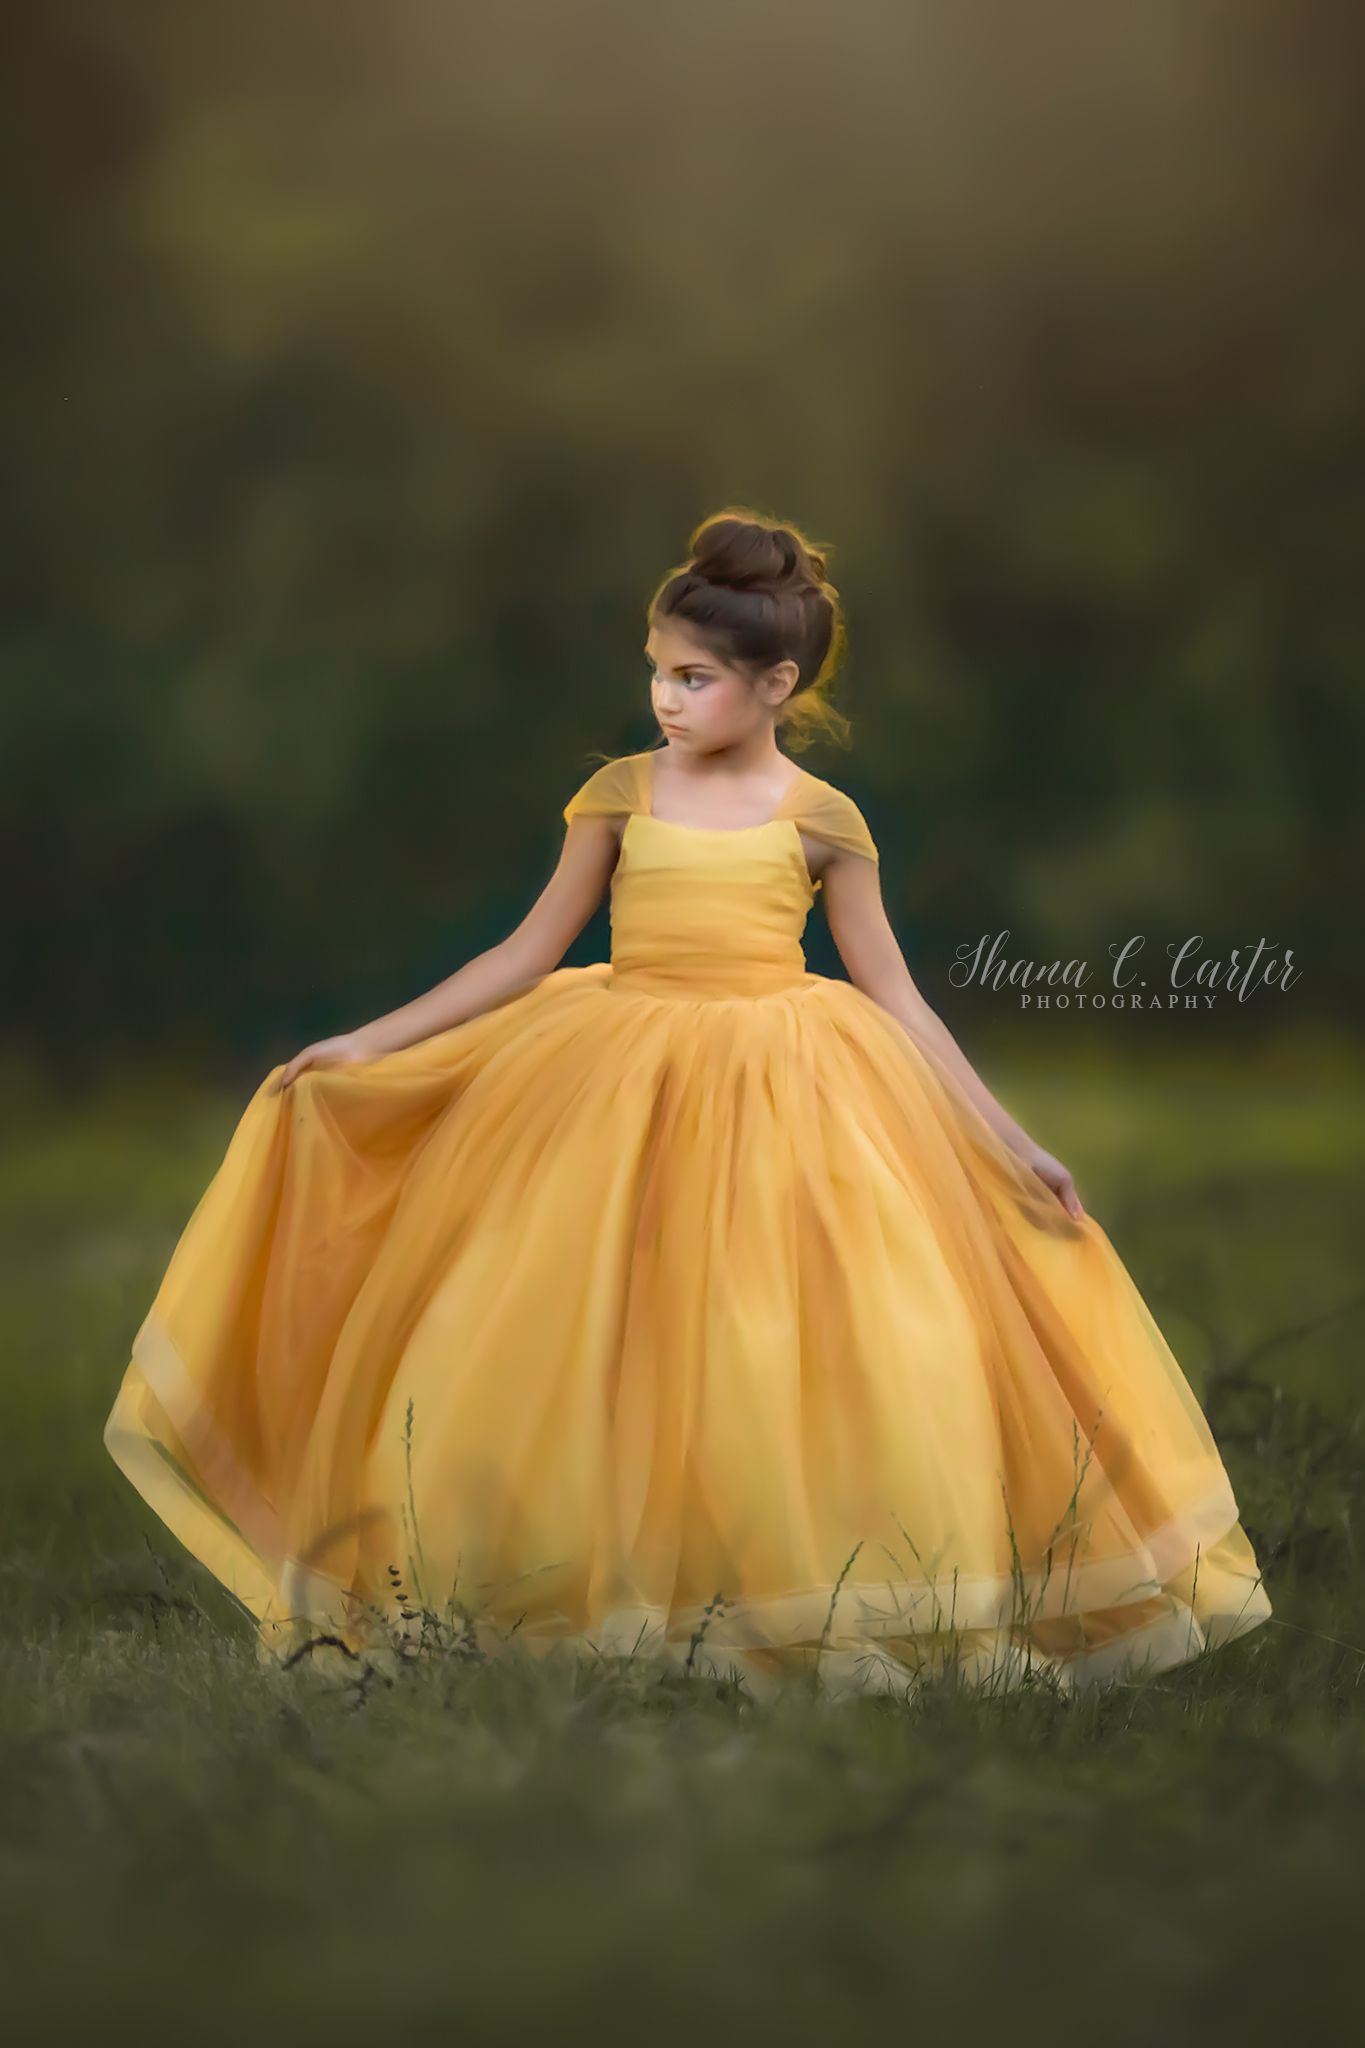 Tutu Princess Designer Tulle dress FLOWERS Theme Bespoke Party weddings yellow